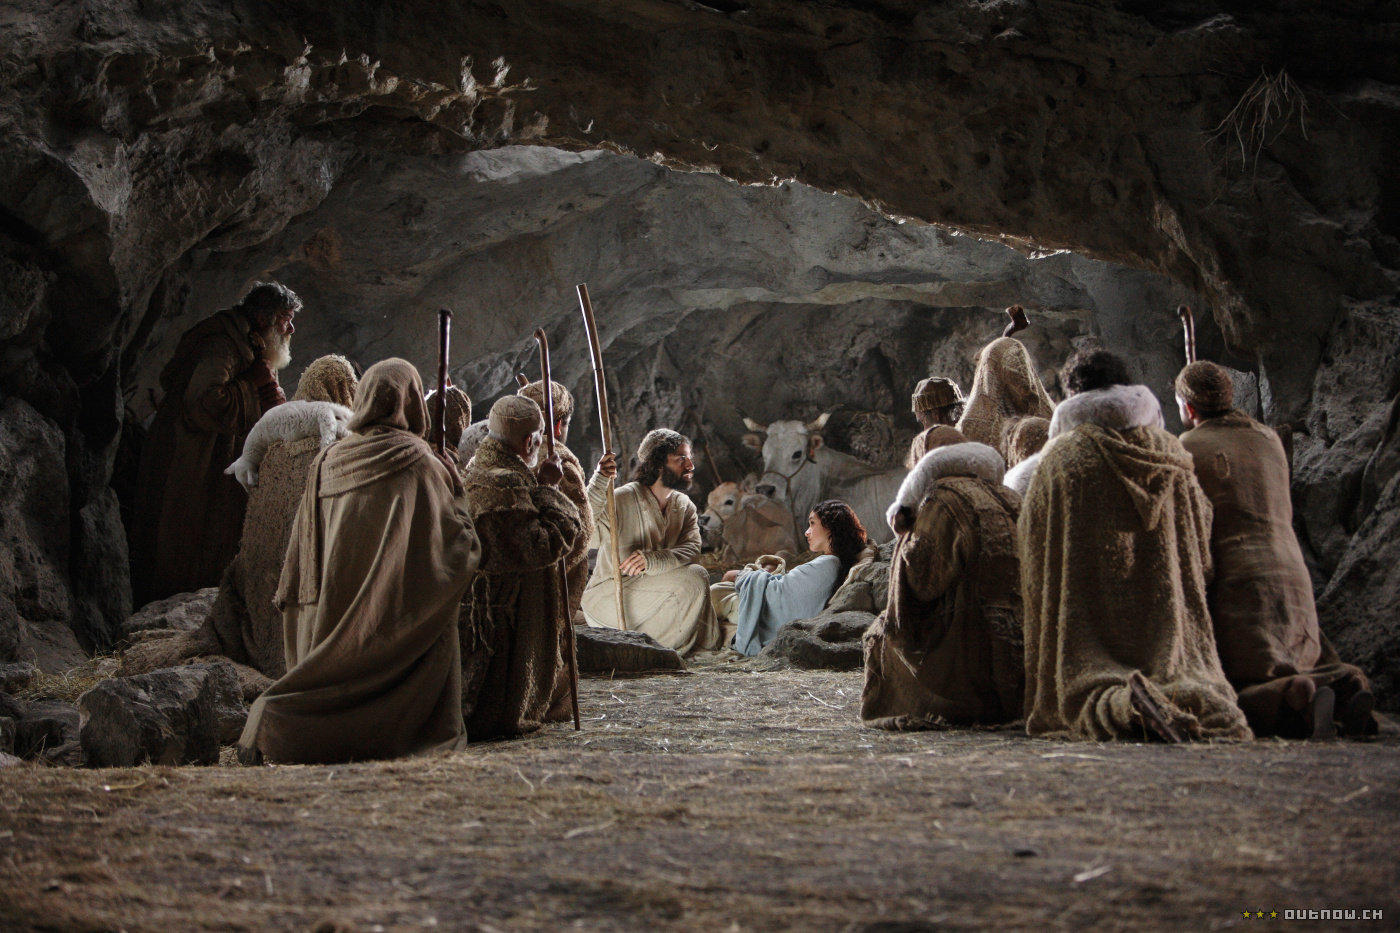 A scene from the movie The Nativity Story